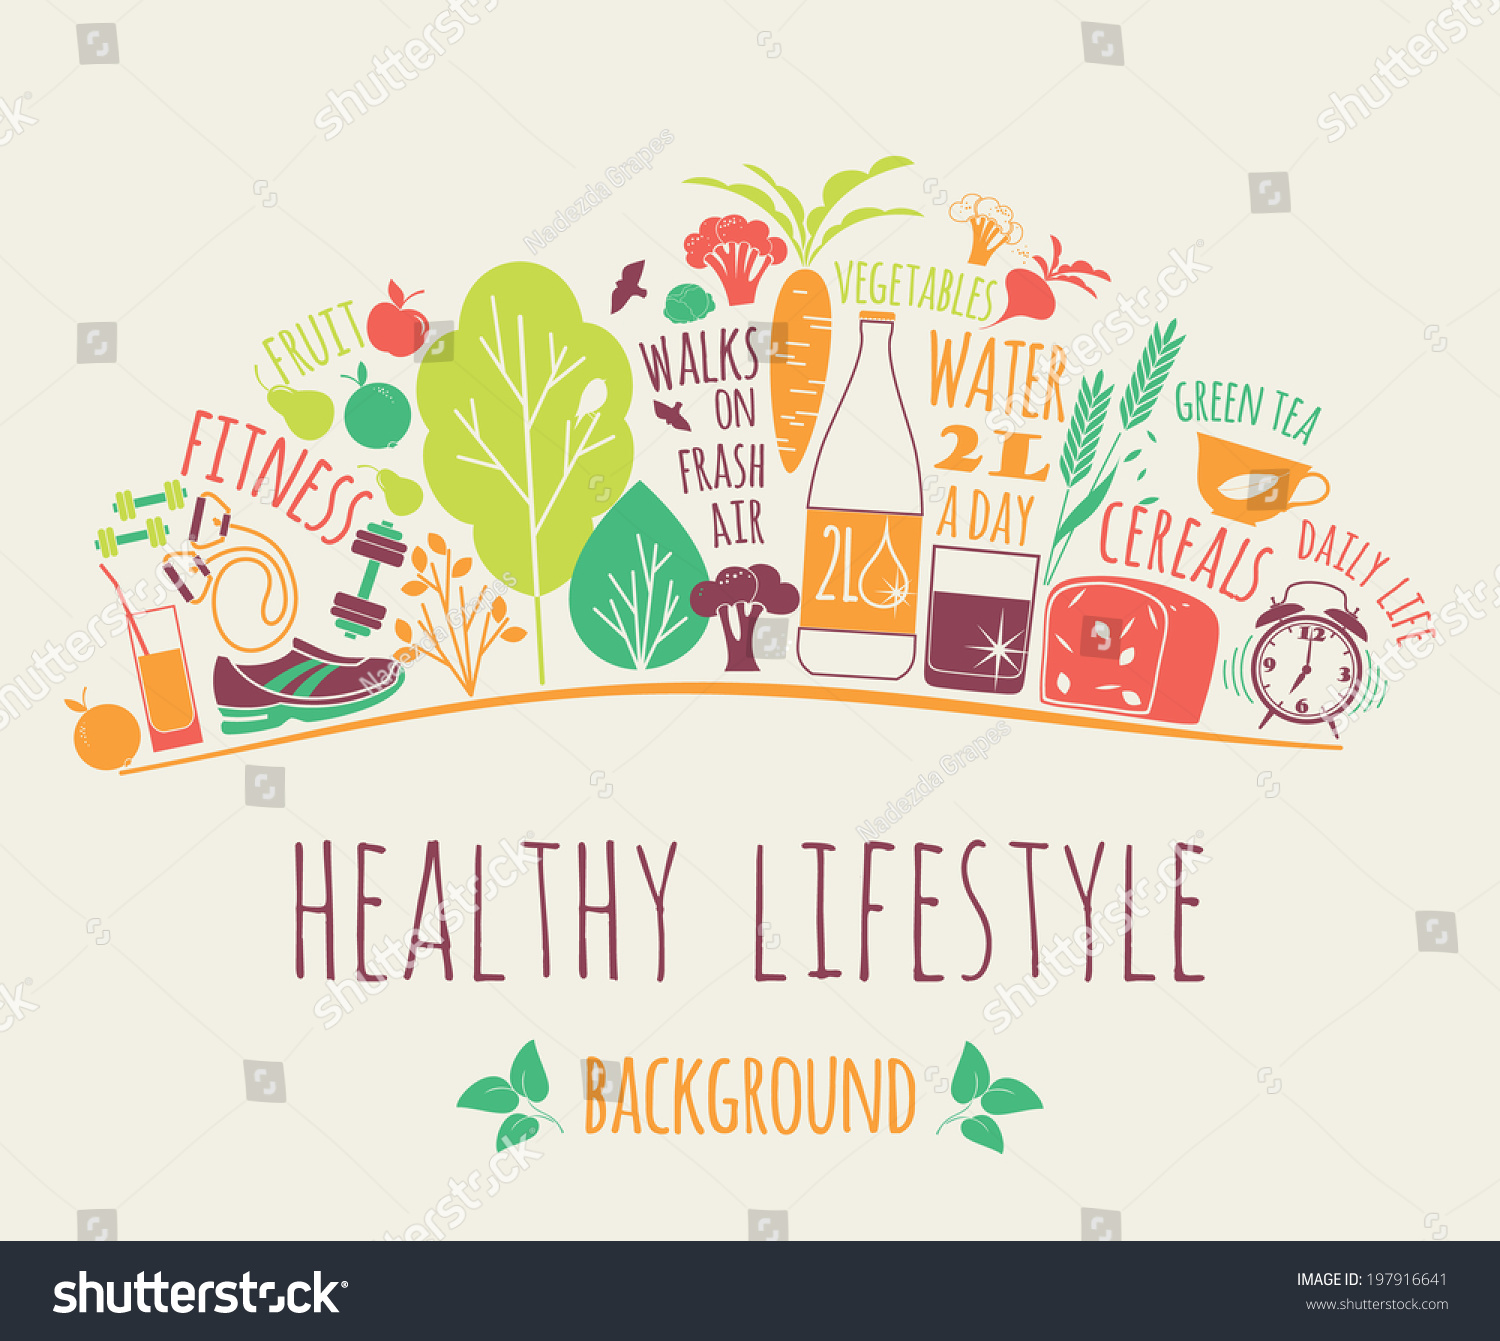 Lifestyl: Healthy Lifestyle Background Stock Vector 197916641